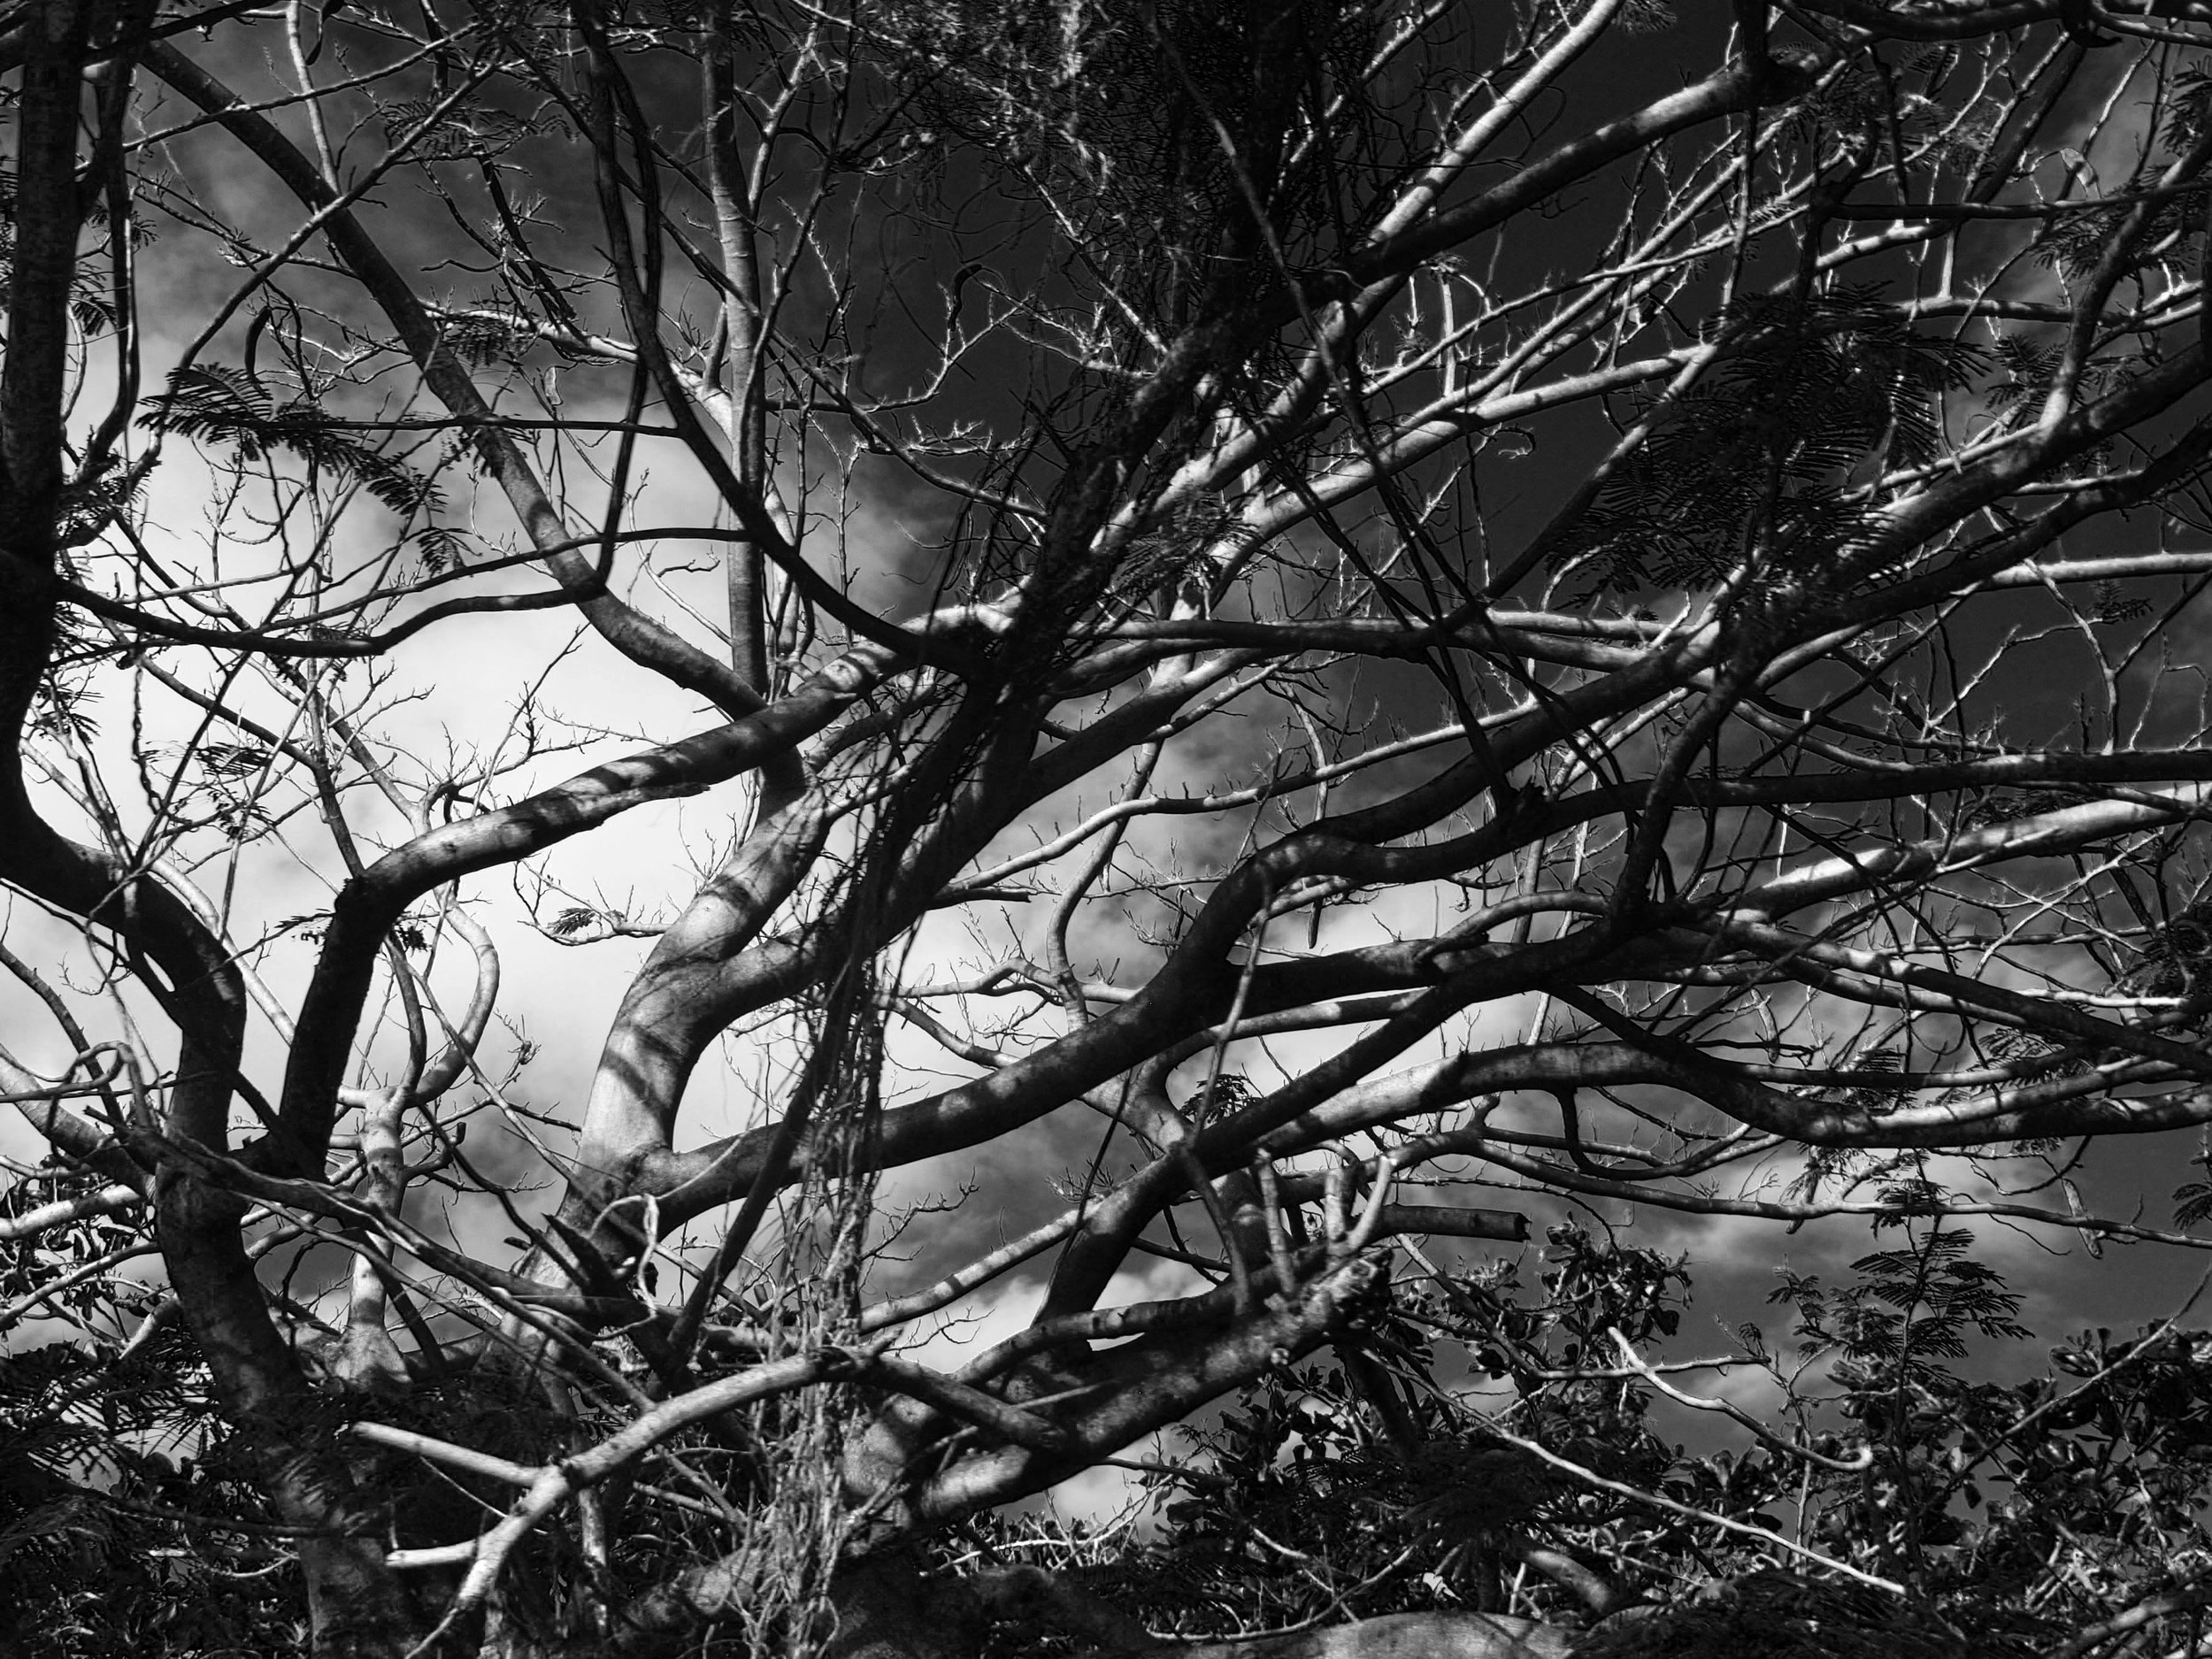 black_and_white_abstract_tree_photograph.jpg